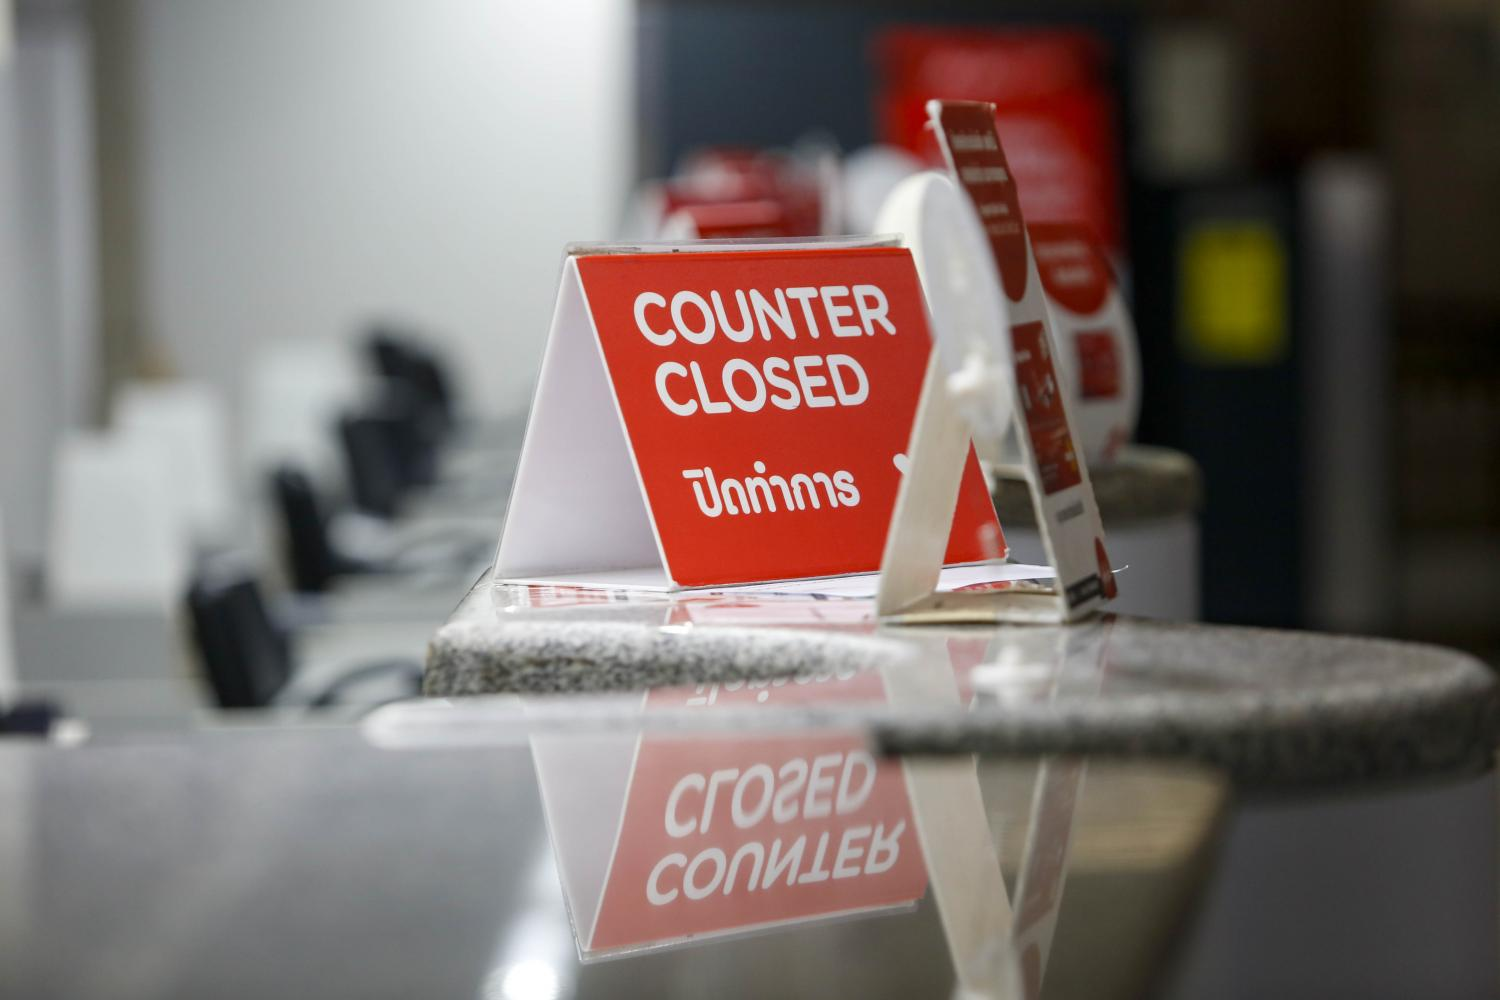 Airline check-in counters remain closed amid travel restrictions. Thailand's economic downturn has been aggravated by supply chain disruptions and global aviation curbs during the pandemic.Pattarapong Chatpattarasill